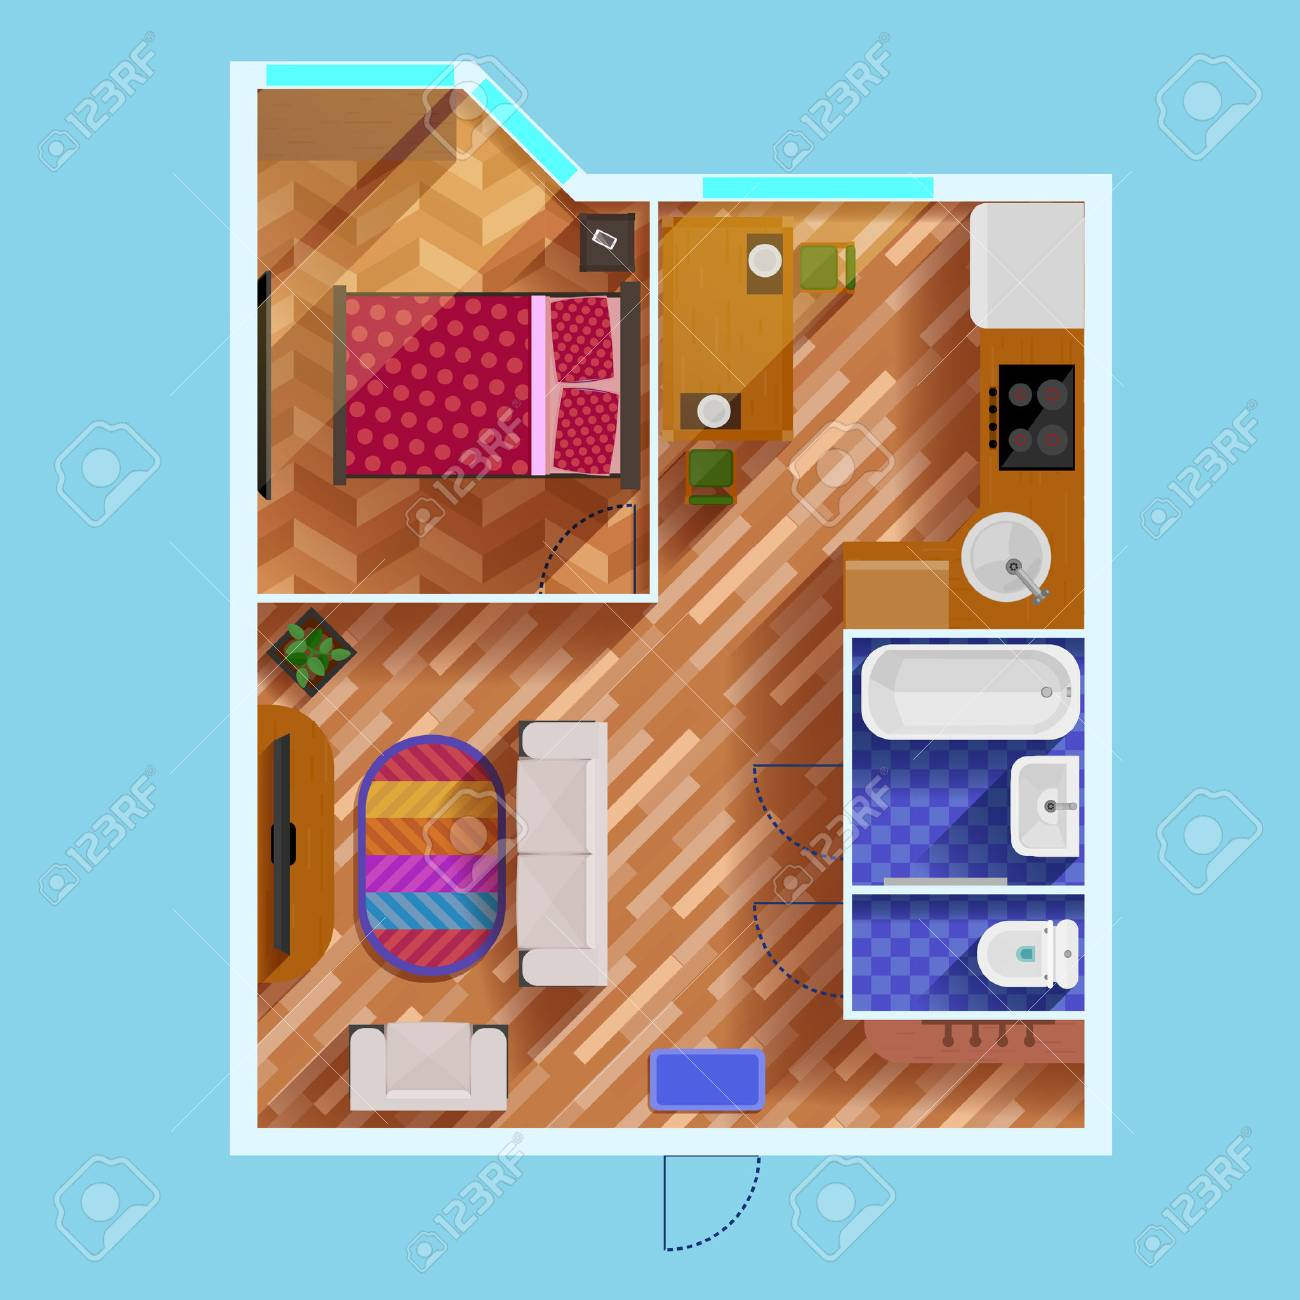 Colorful Floor Plan Of Apartment With One Bedroom Living Room